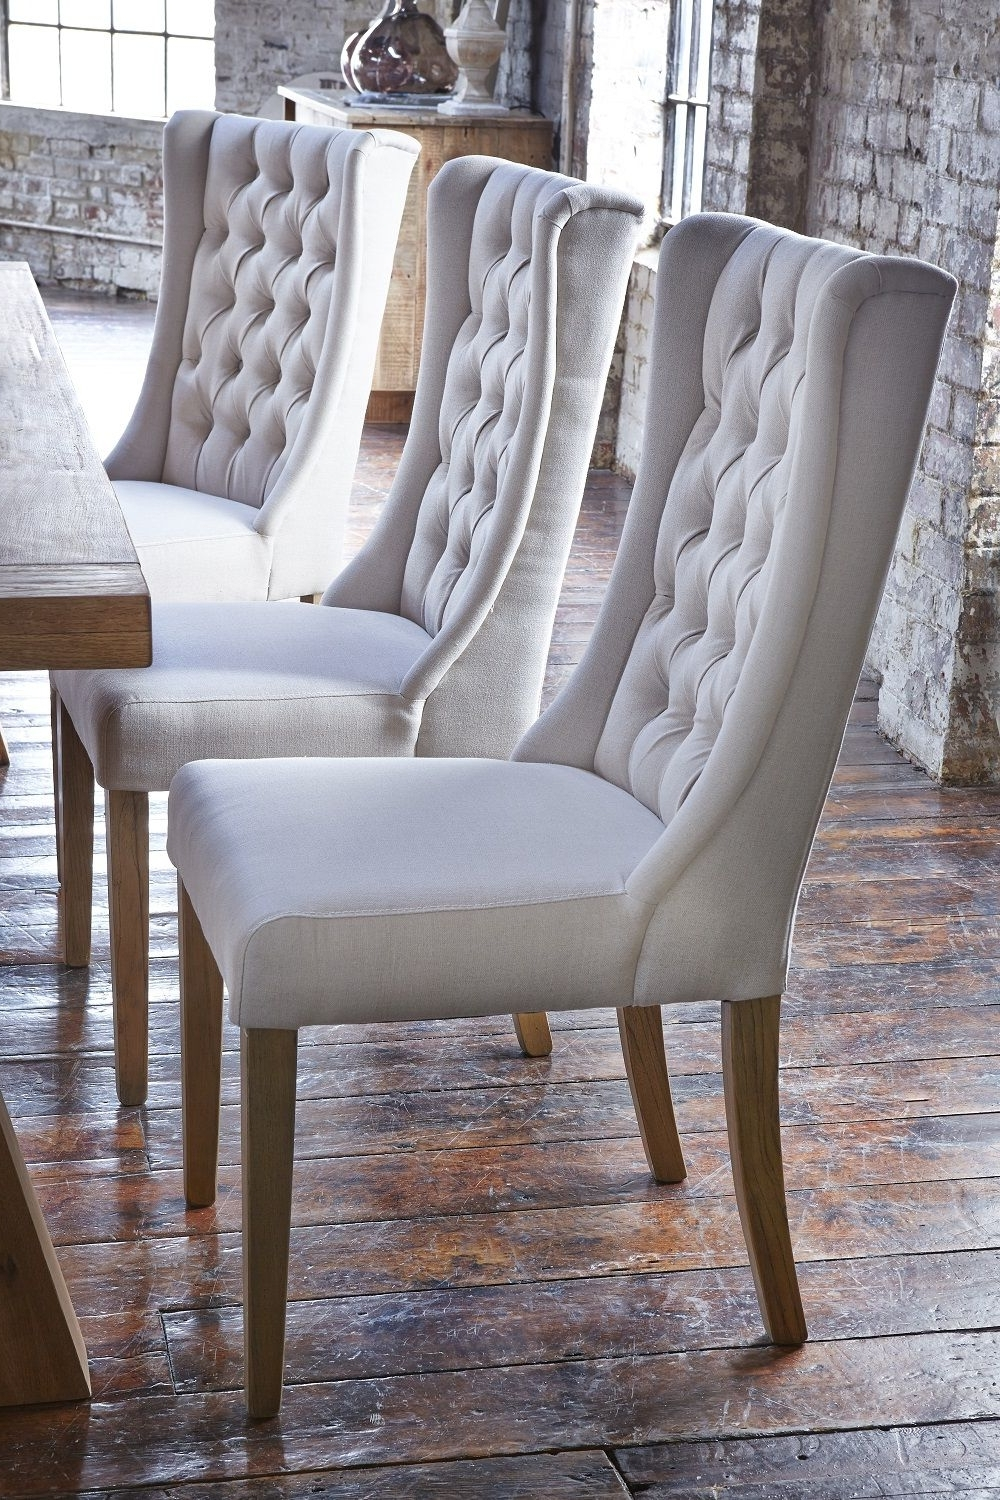 Popular Kipling Fabric Dining Chair, Cream And Oak (View 22 of 25)